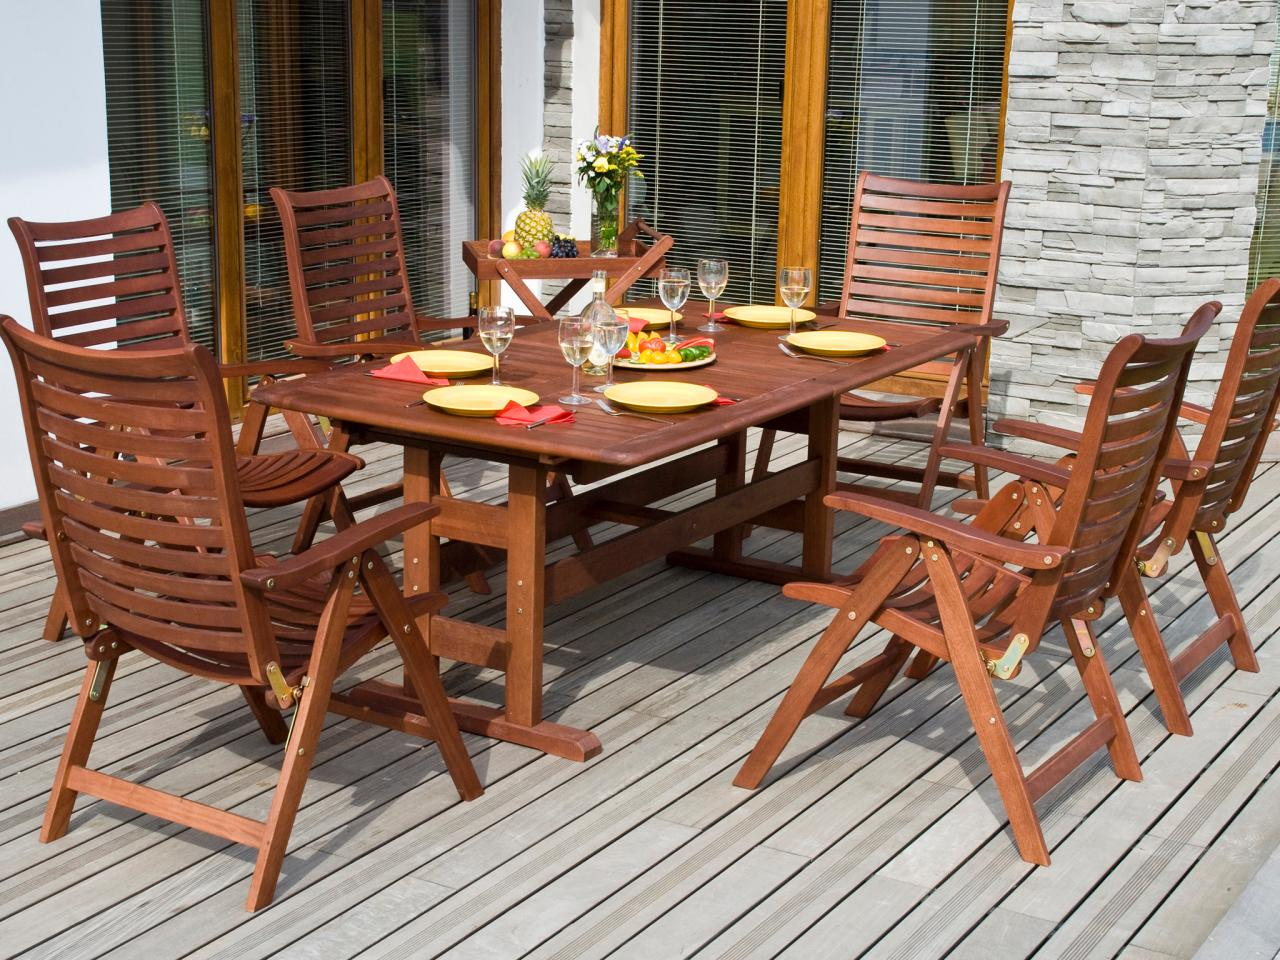 Images of Tips for Refinishing Wooden Outdoor Furniture wooden outdoor furniture